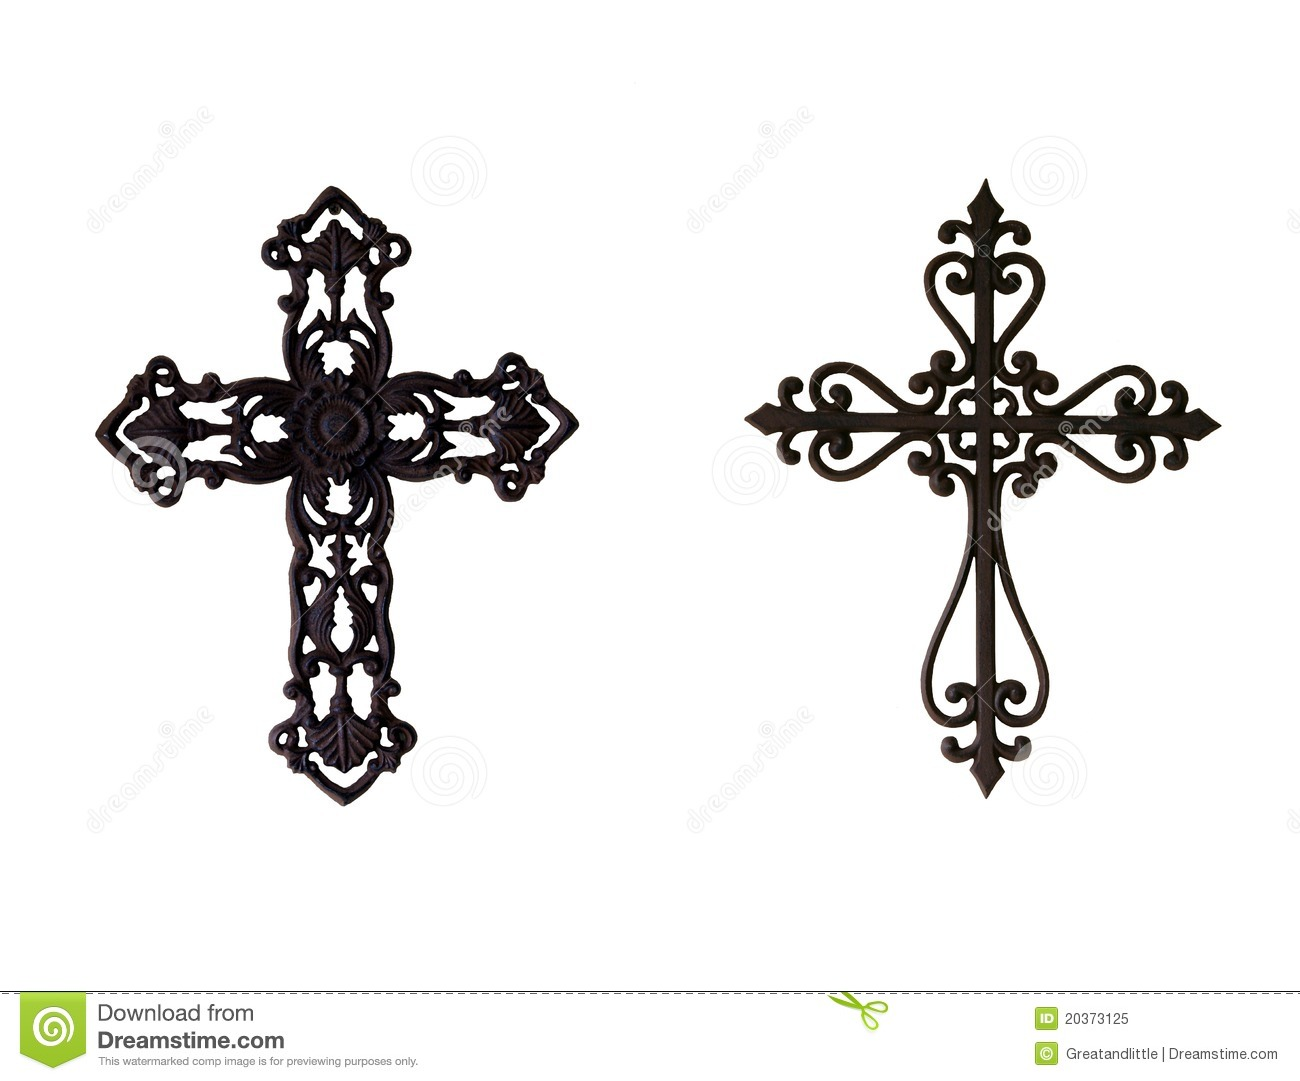 Two Iron Crosses Royalty Free Stock Photo - Image: 20373125